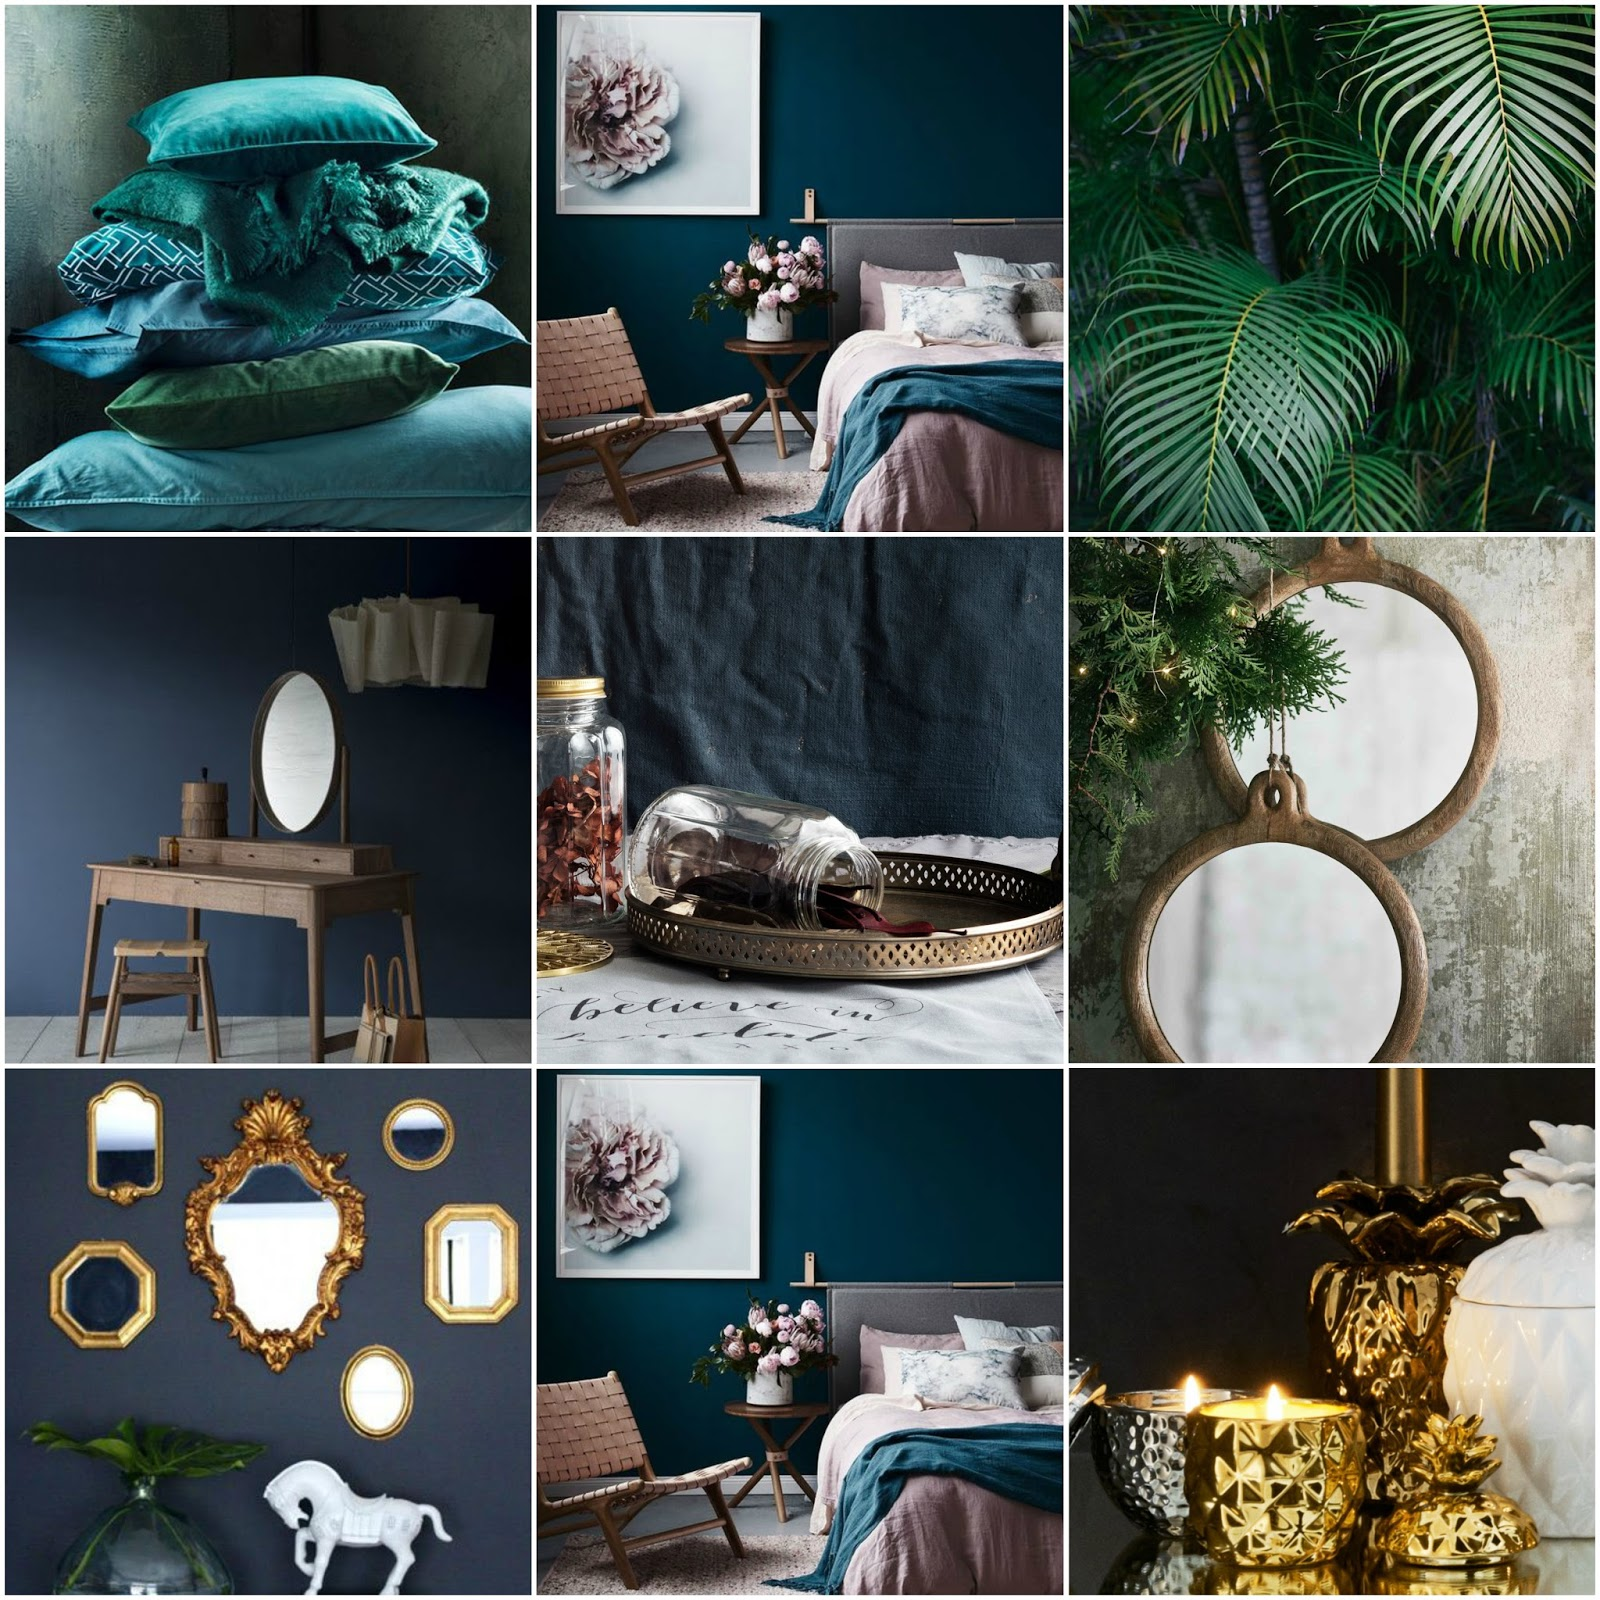 Bedroom Mood Board | Lifestyle | MariesConnections